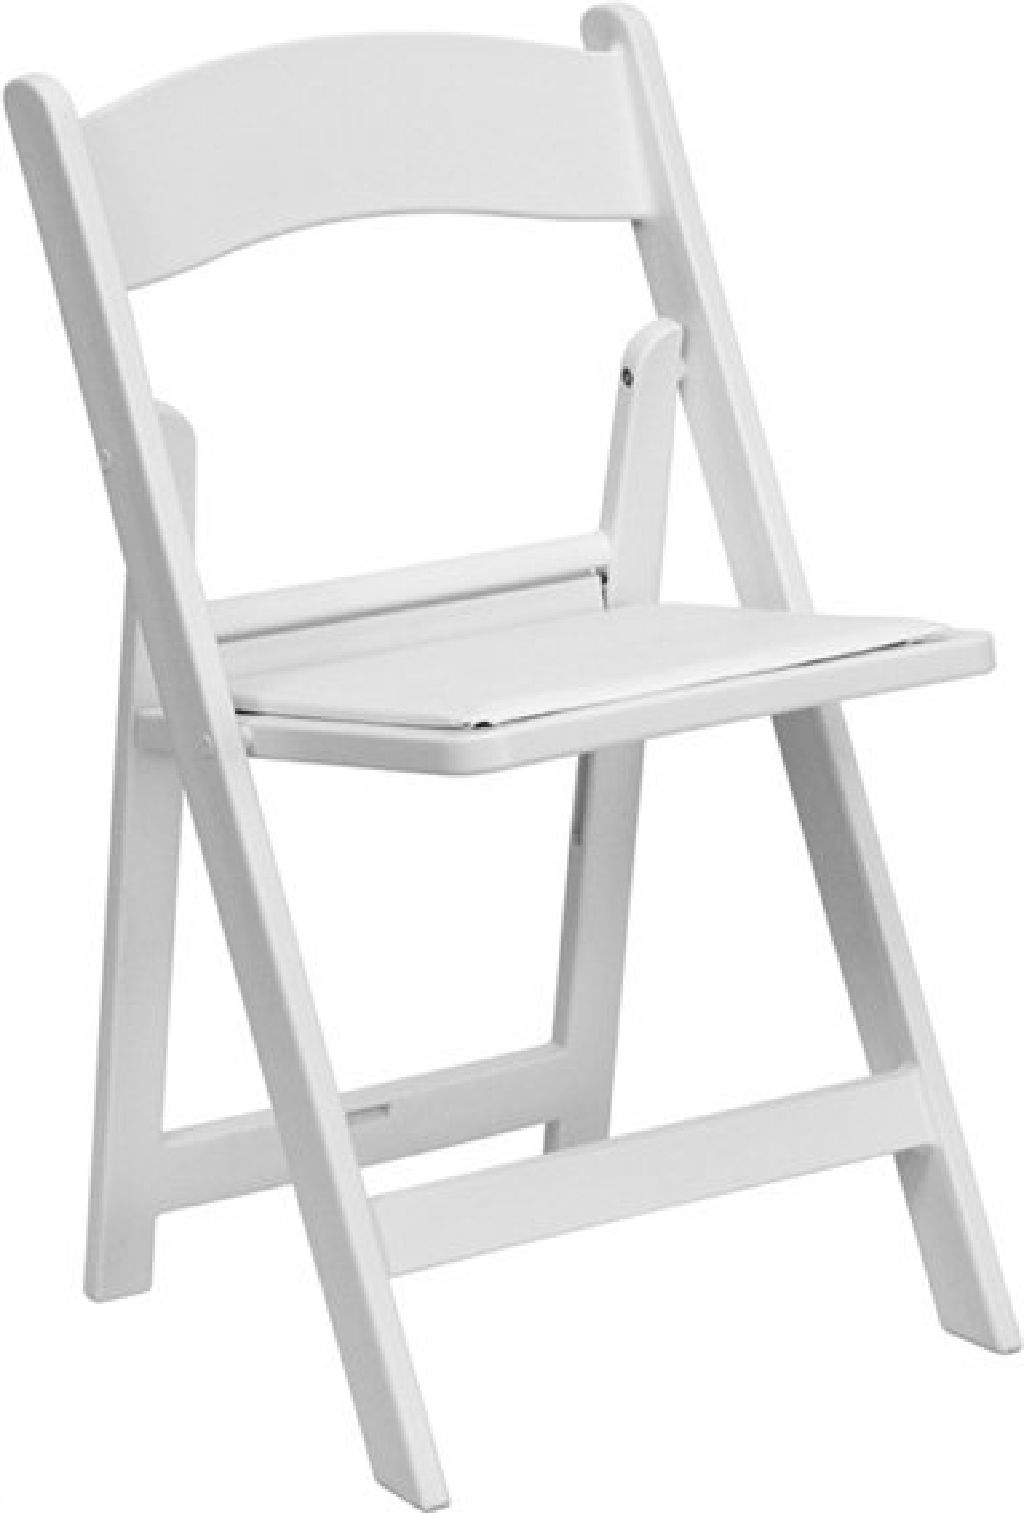 Awesome Get The Best Price On Folding Chairs At Chair Company Larry Inzonedesignstudio Interior Chair Design Inzonedesignstudiocom